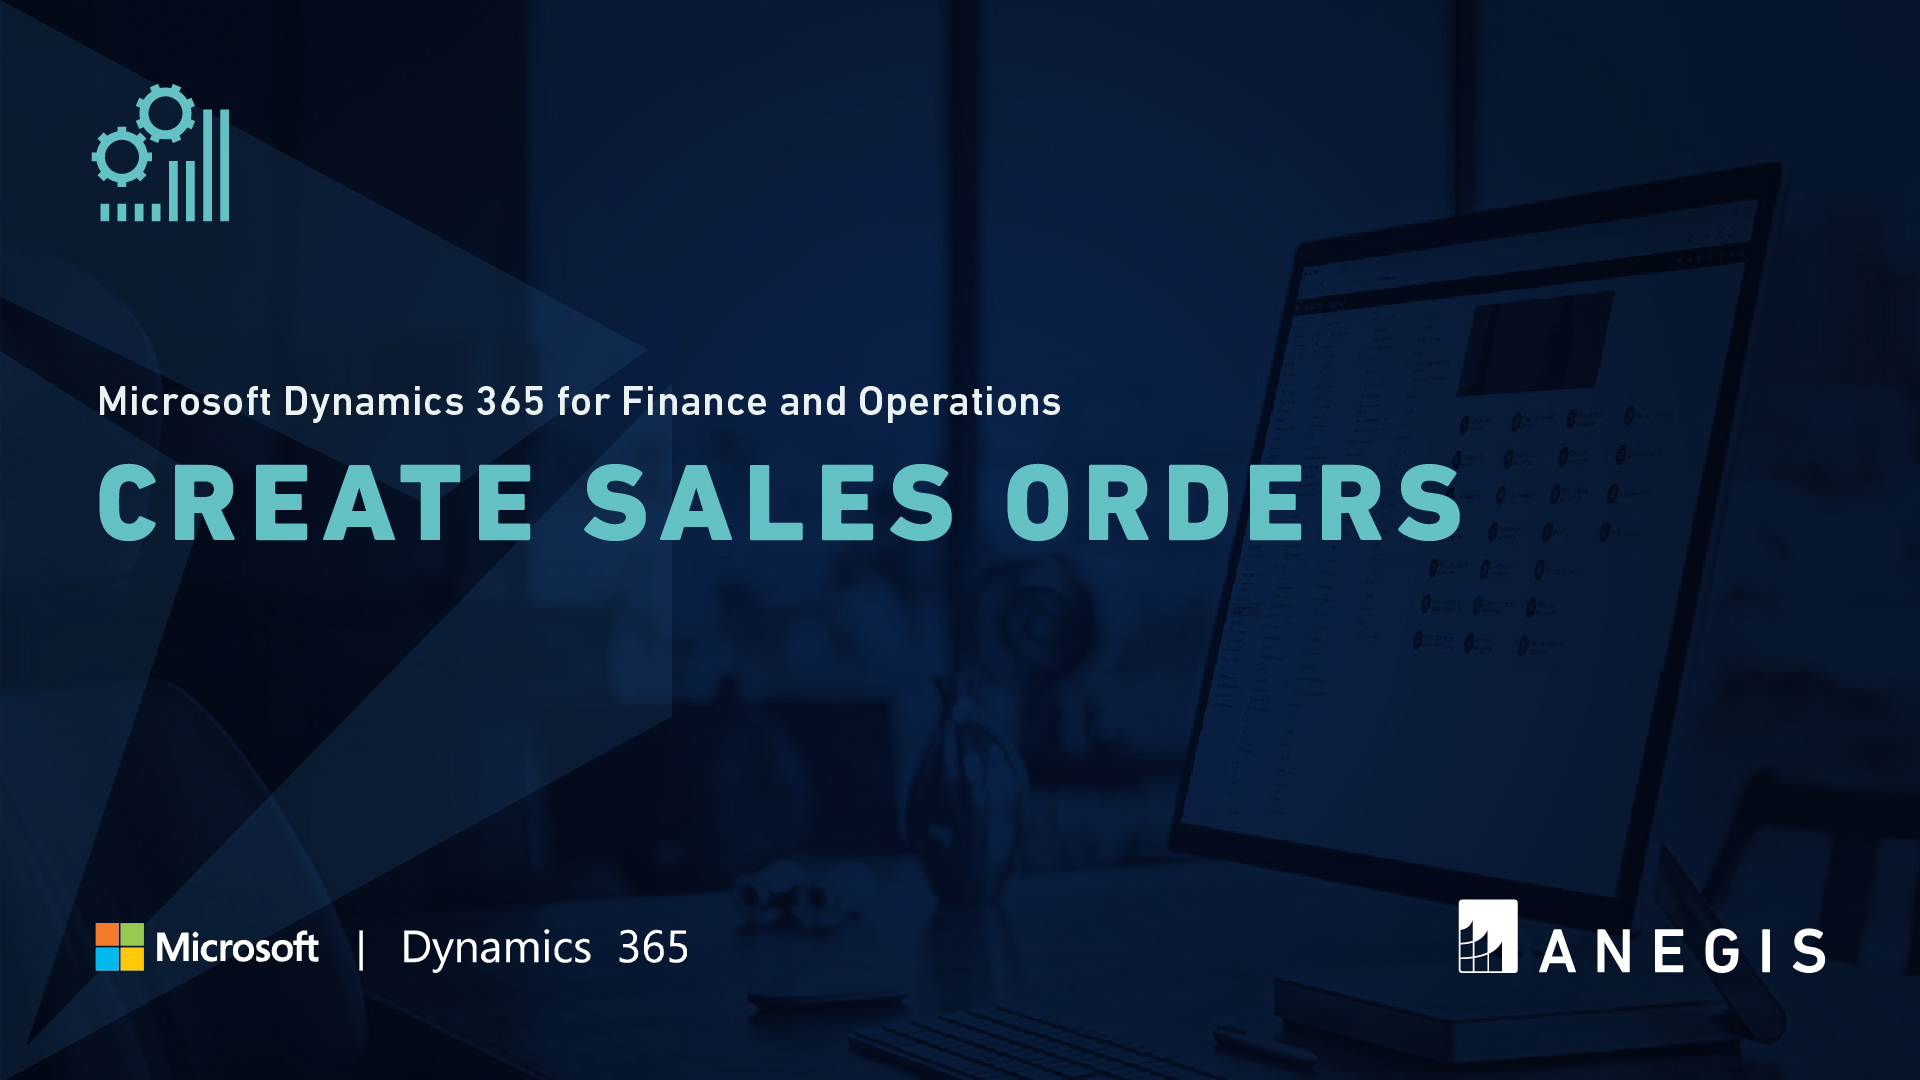 D365 F&O: Create Sales Orders